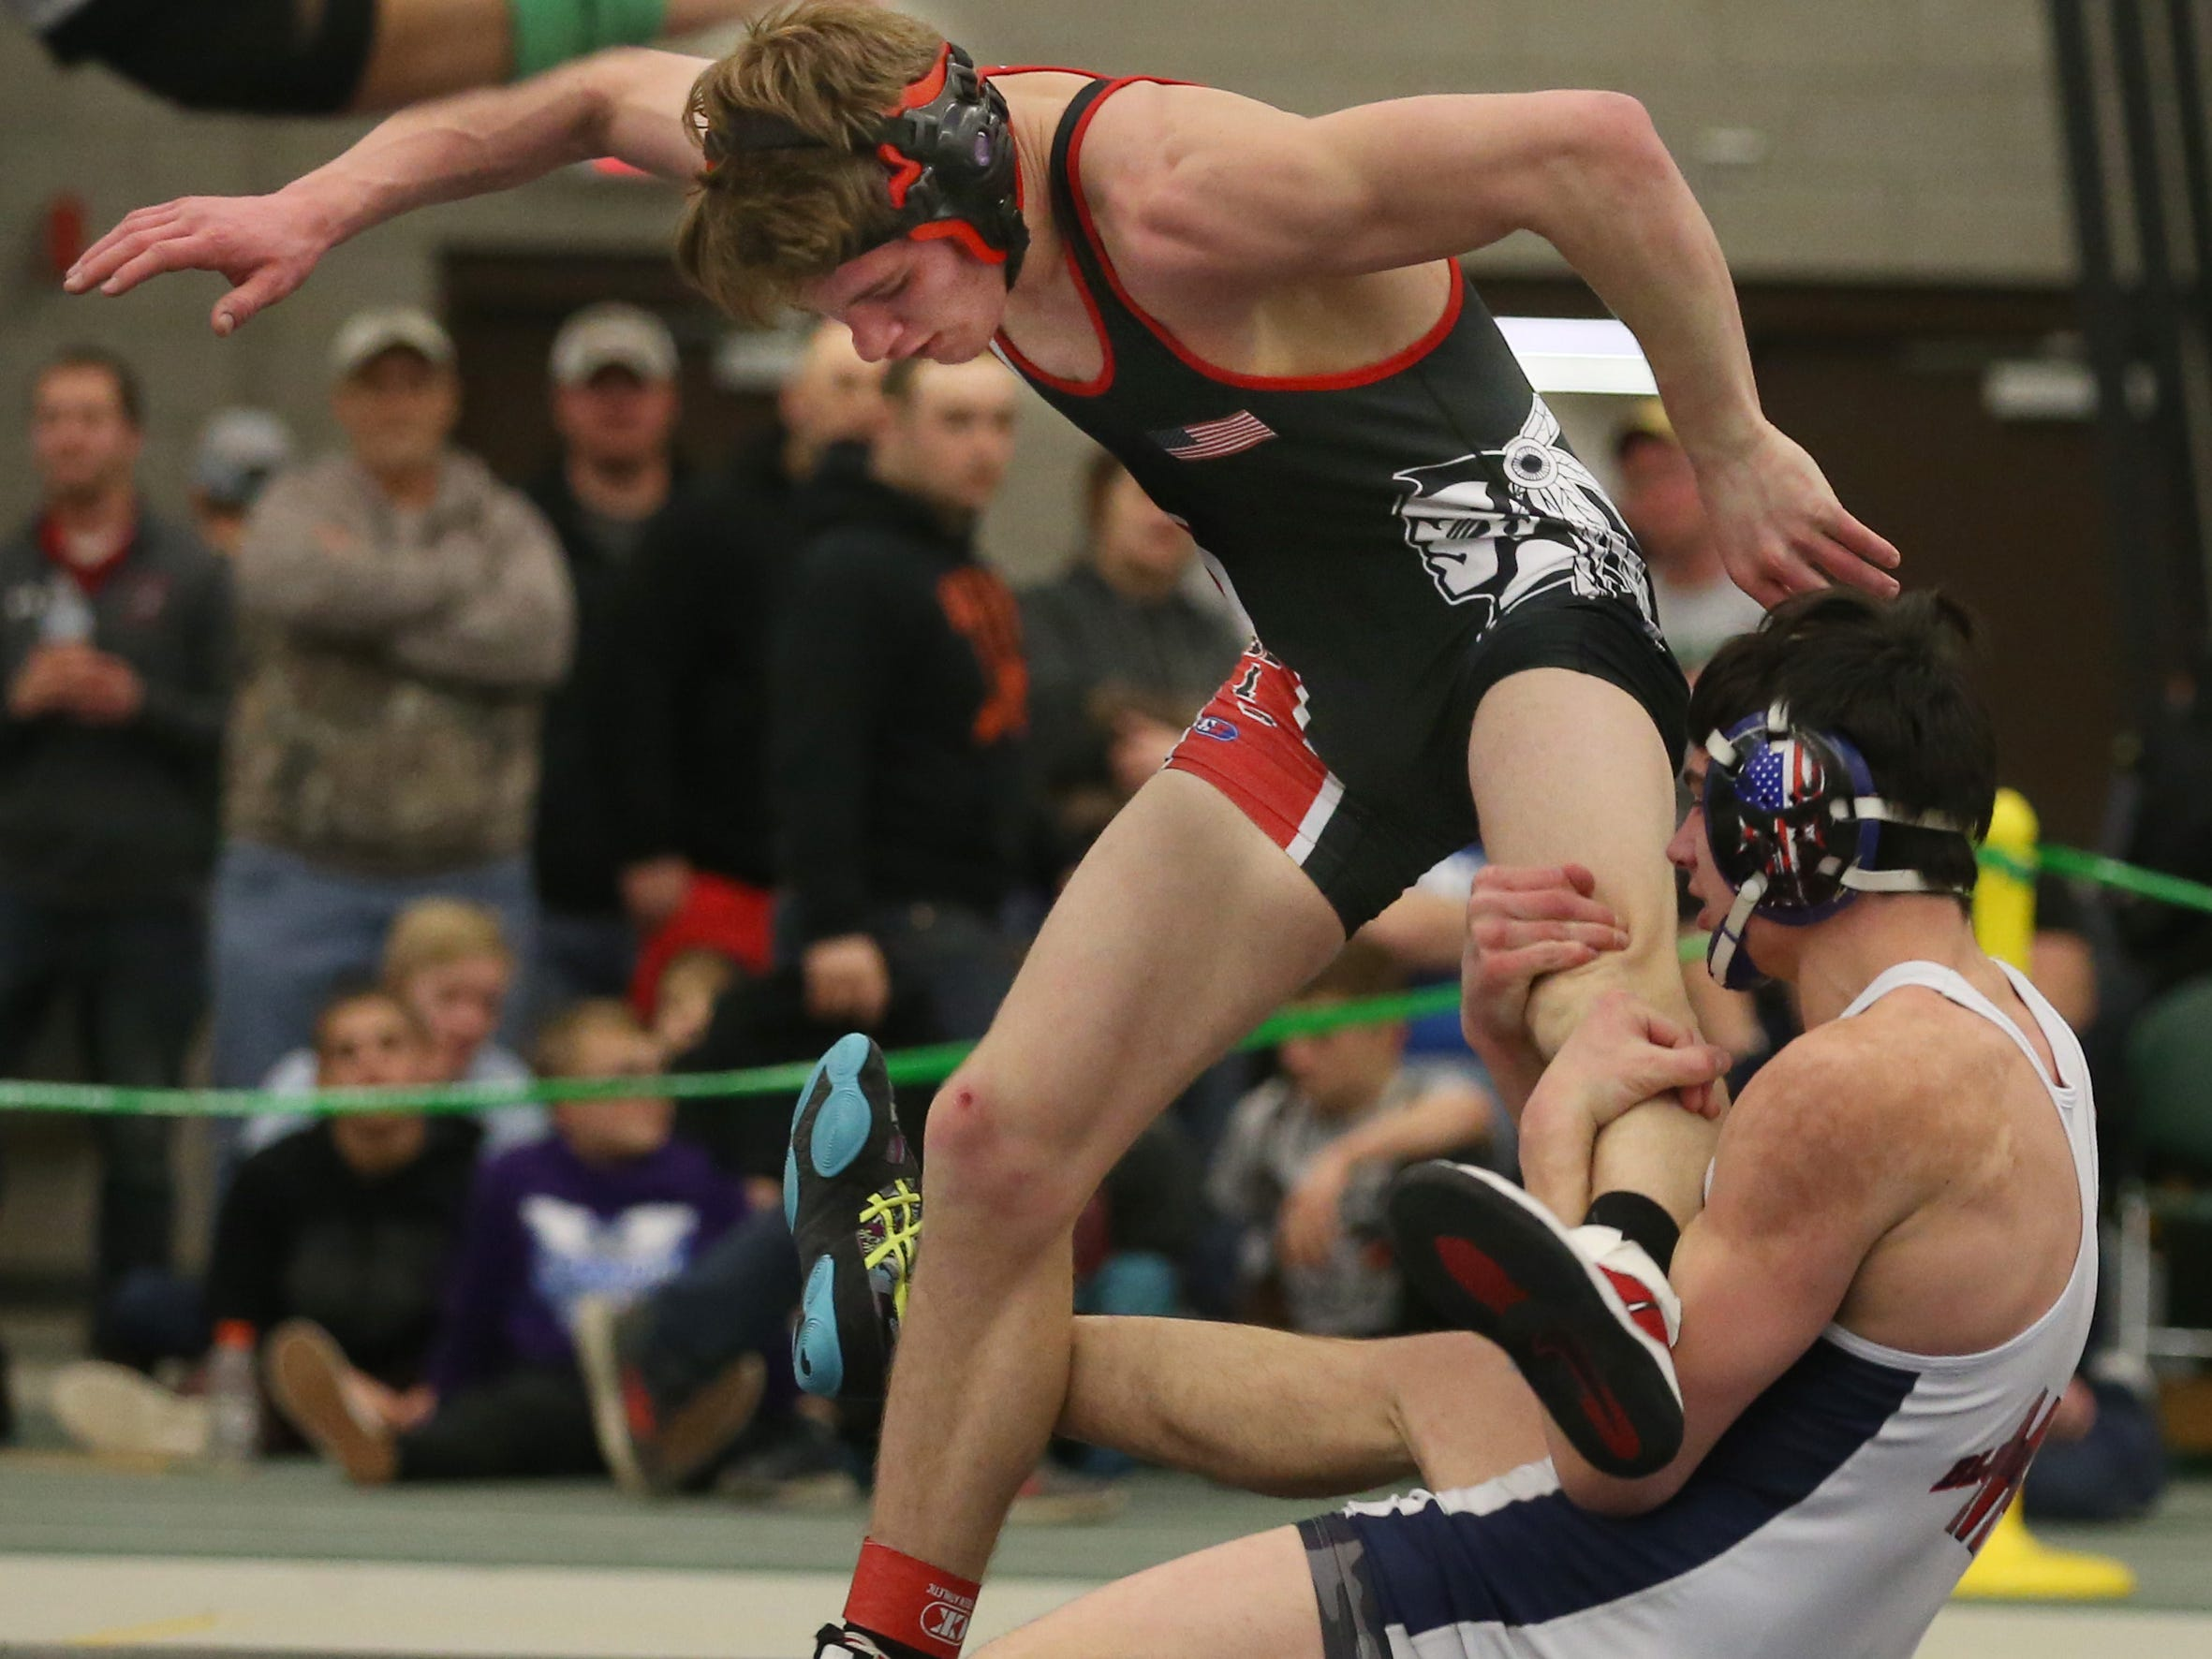 Mynderse's Trent Youngs, right, tries to take down Jonathan Davis, Canisteo-Greenwood, in their Division 2, 152 pound match at the 52nd Annual State Wrestling Qualifier at the College at Brockport Saturday, Feb. 9, 2019.